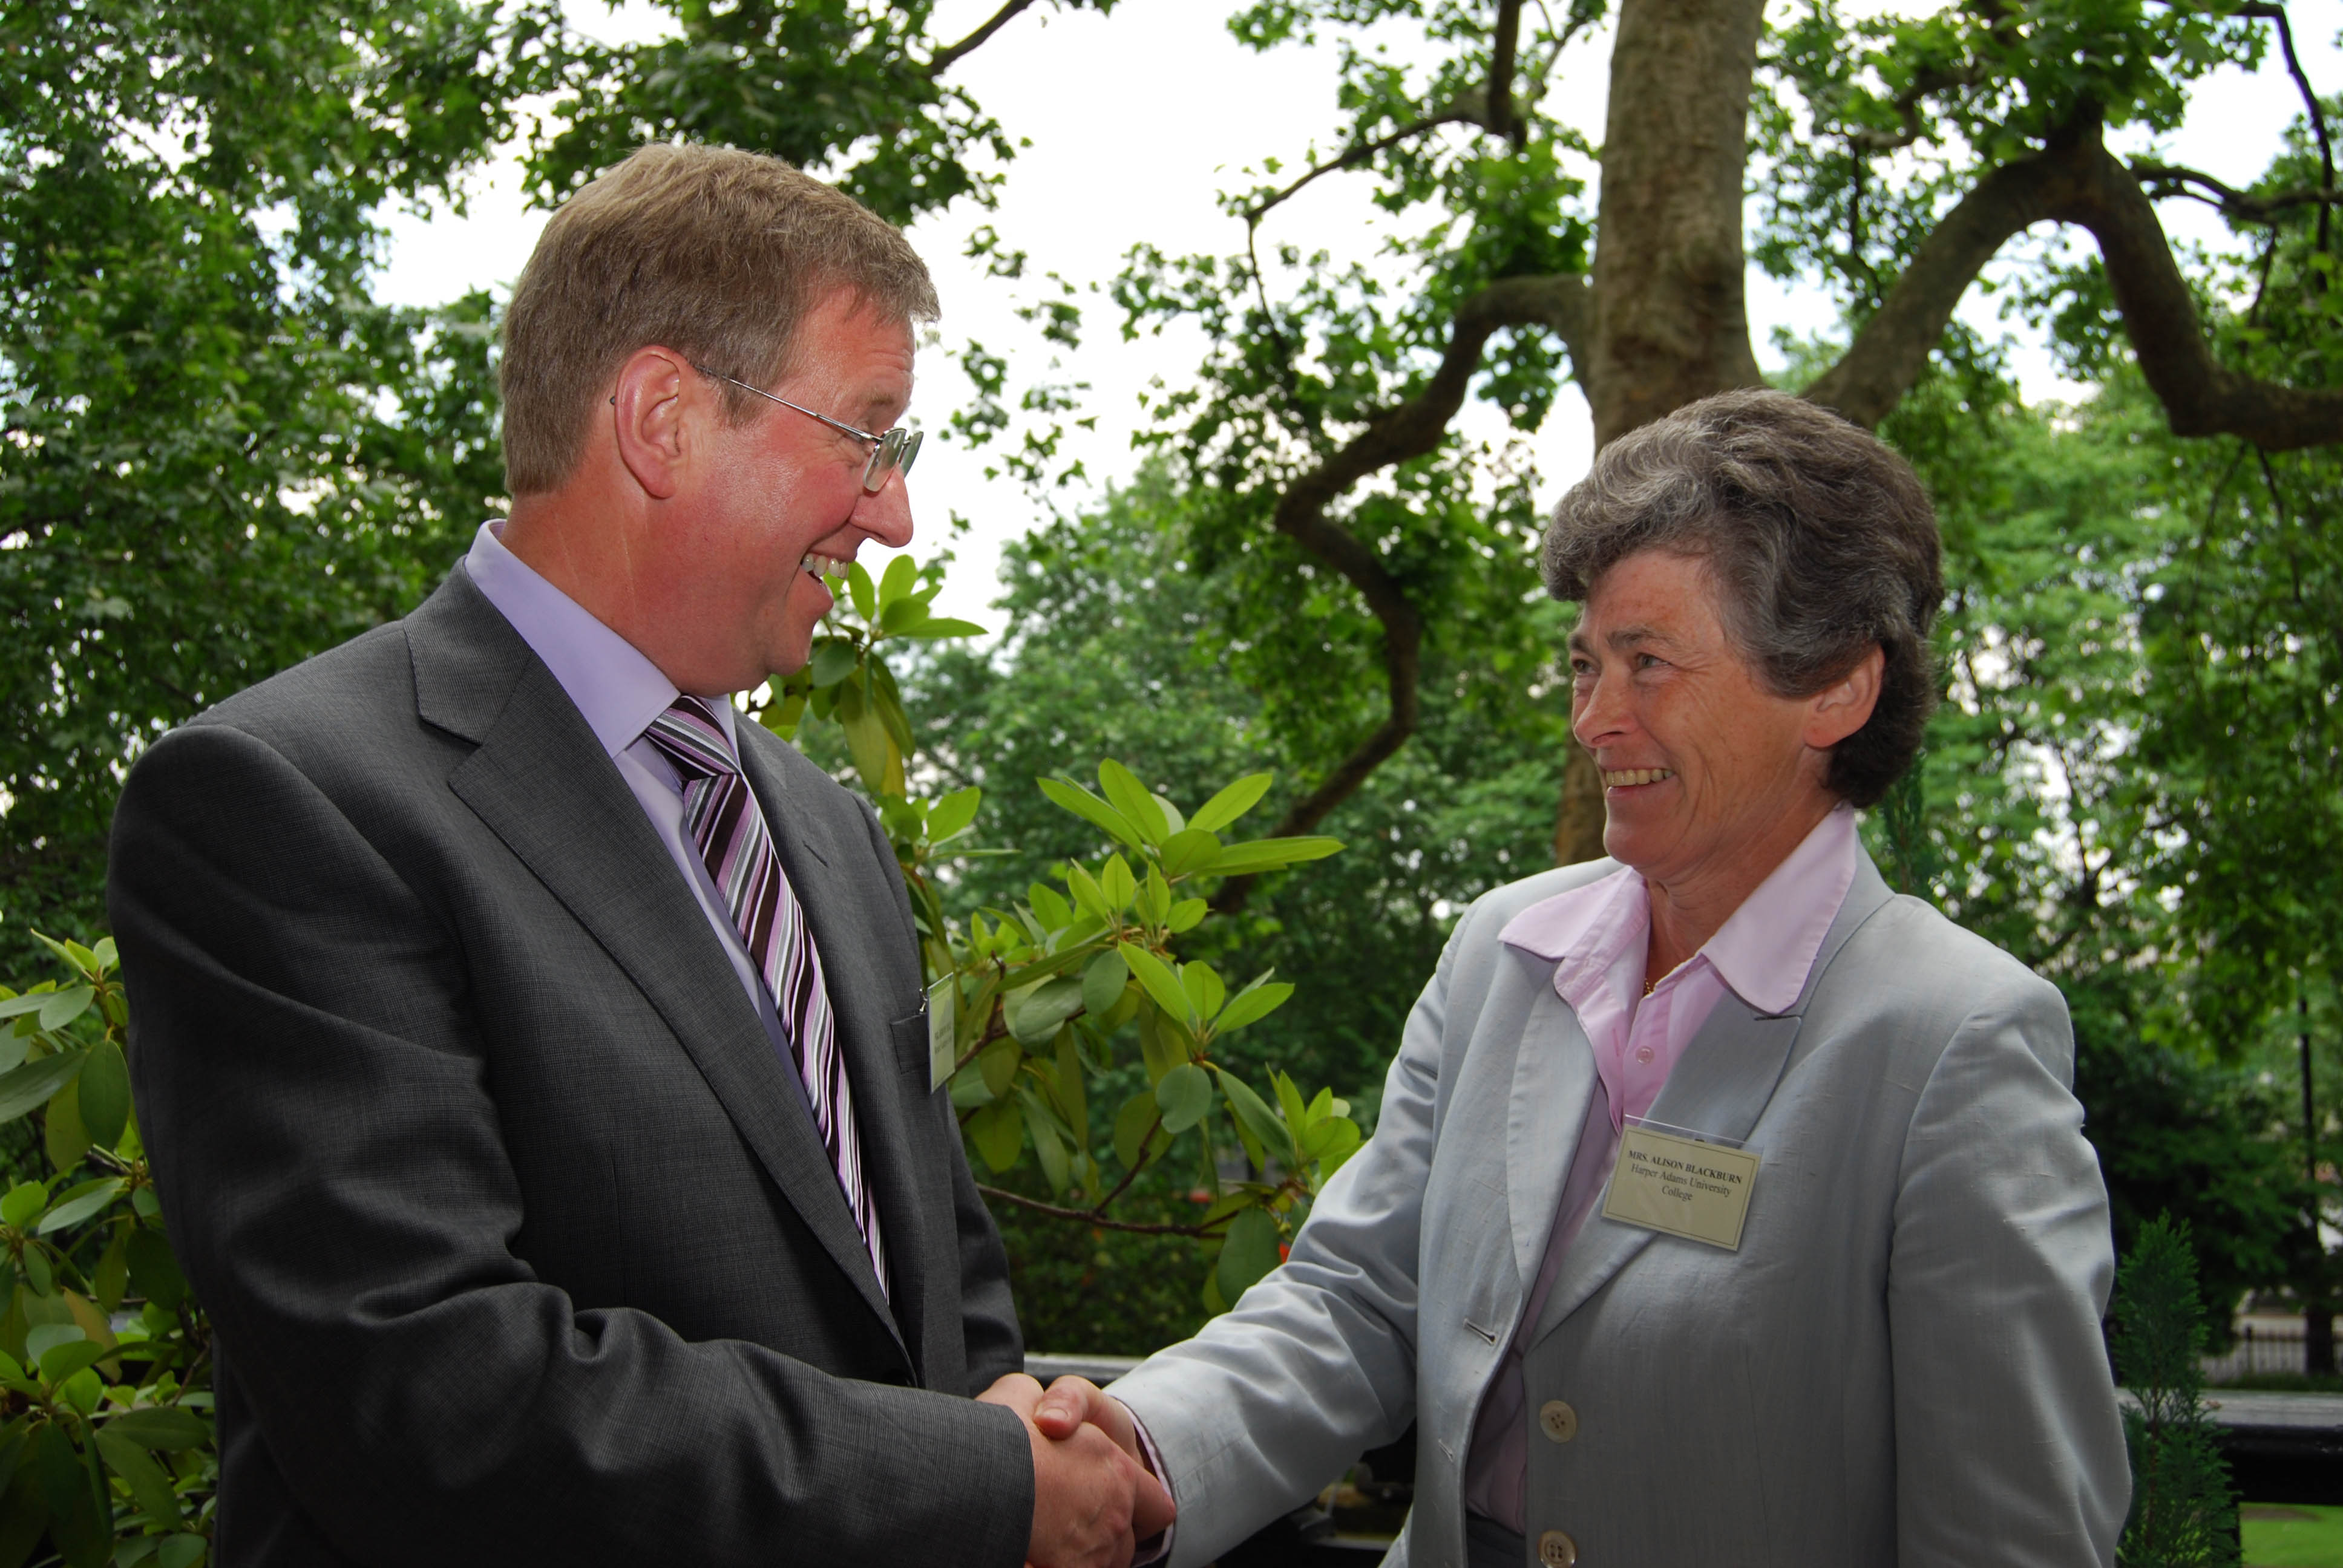 Harper Adams Chairman of Governors Alison Blackburn congratulates Jeremy Hall